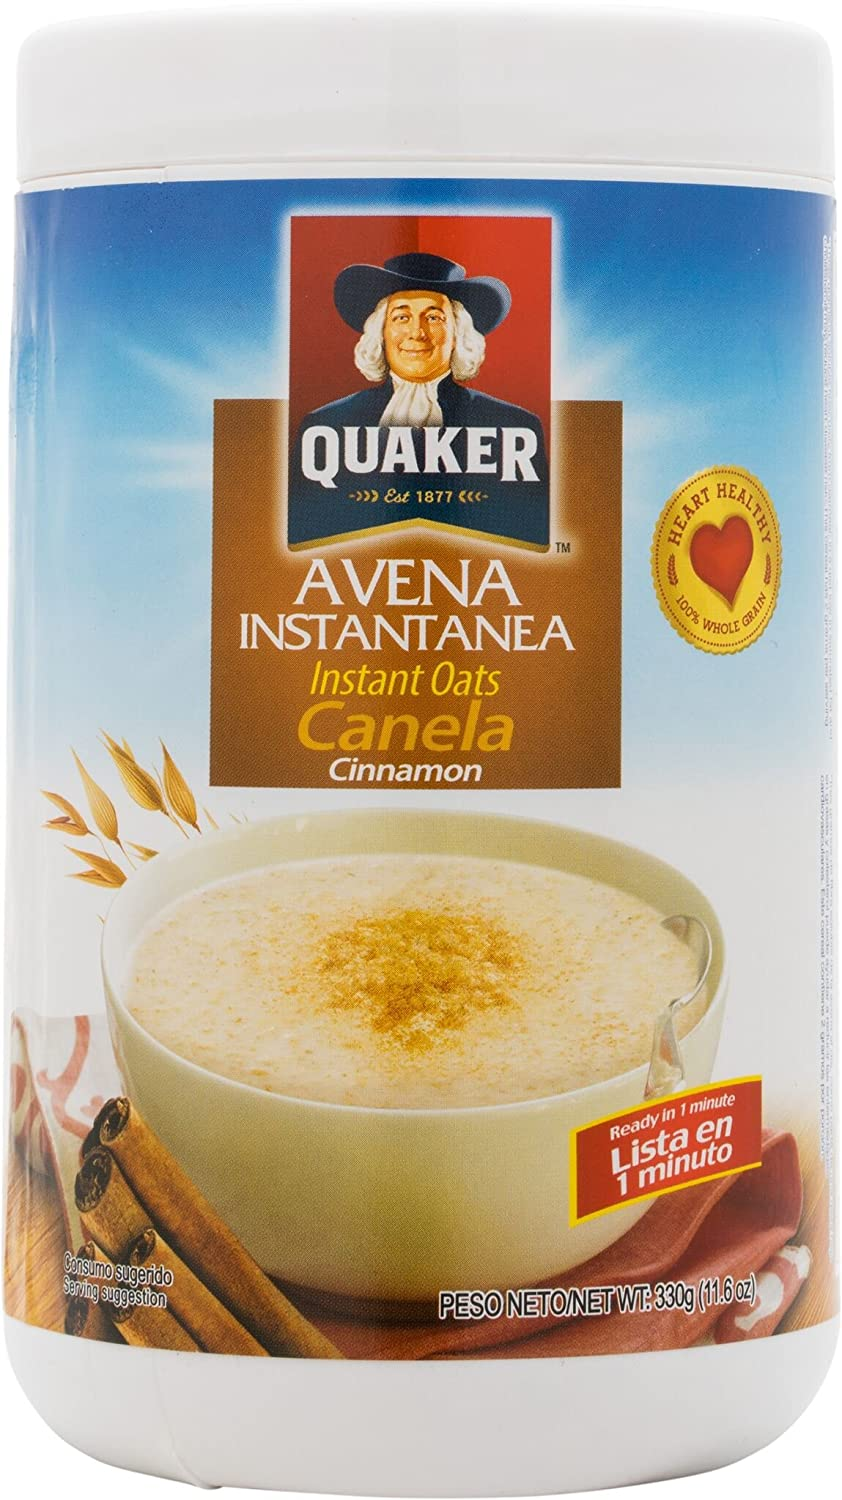 Amazon.com : Quaker Avena with Iron 11.6 OZ Instant Oats With Iron Cereal Mix : Oatmeal Breakfast Cereals : Grocery & Gourmet Food